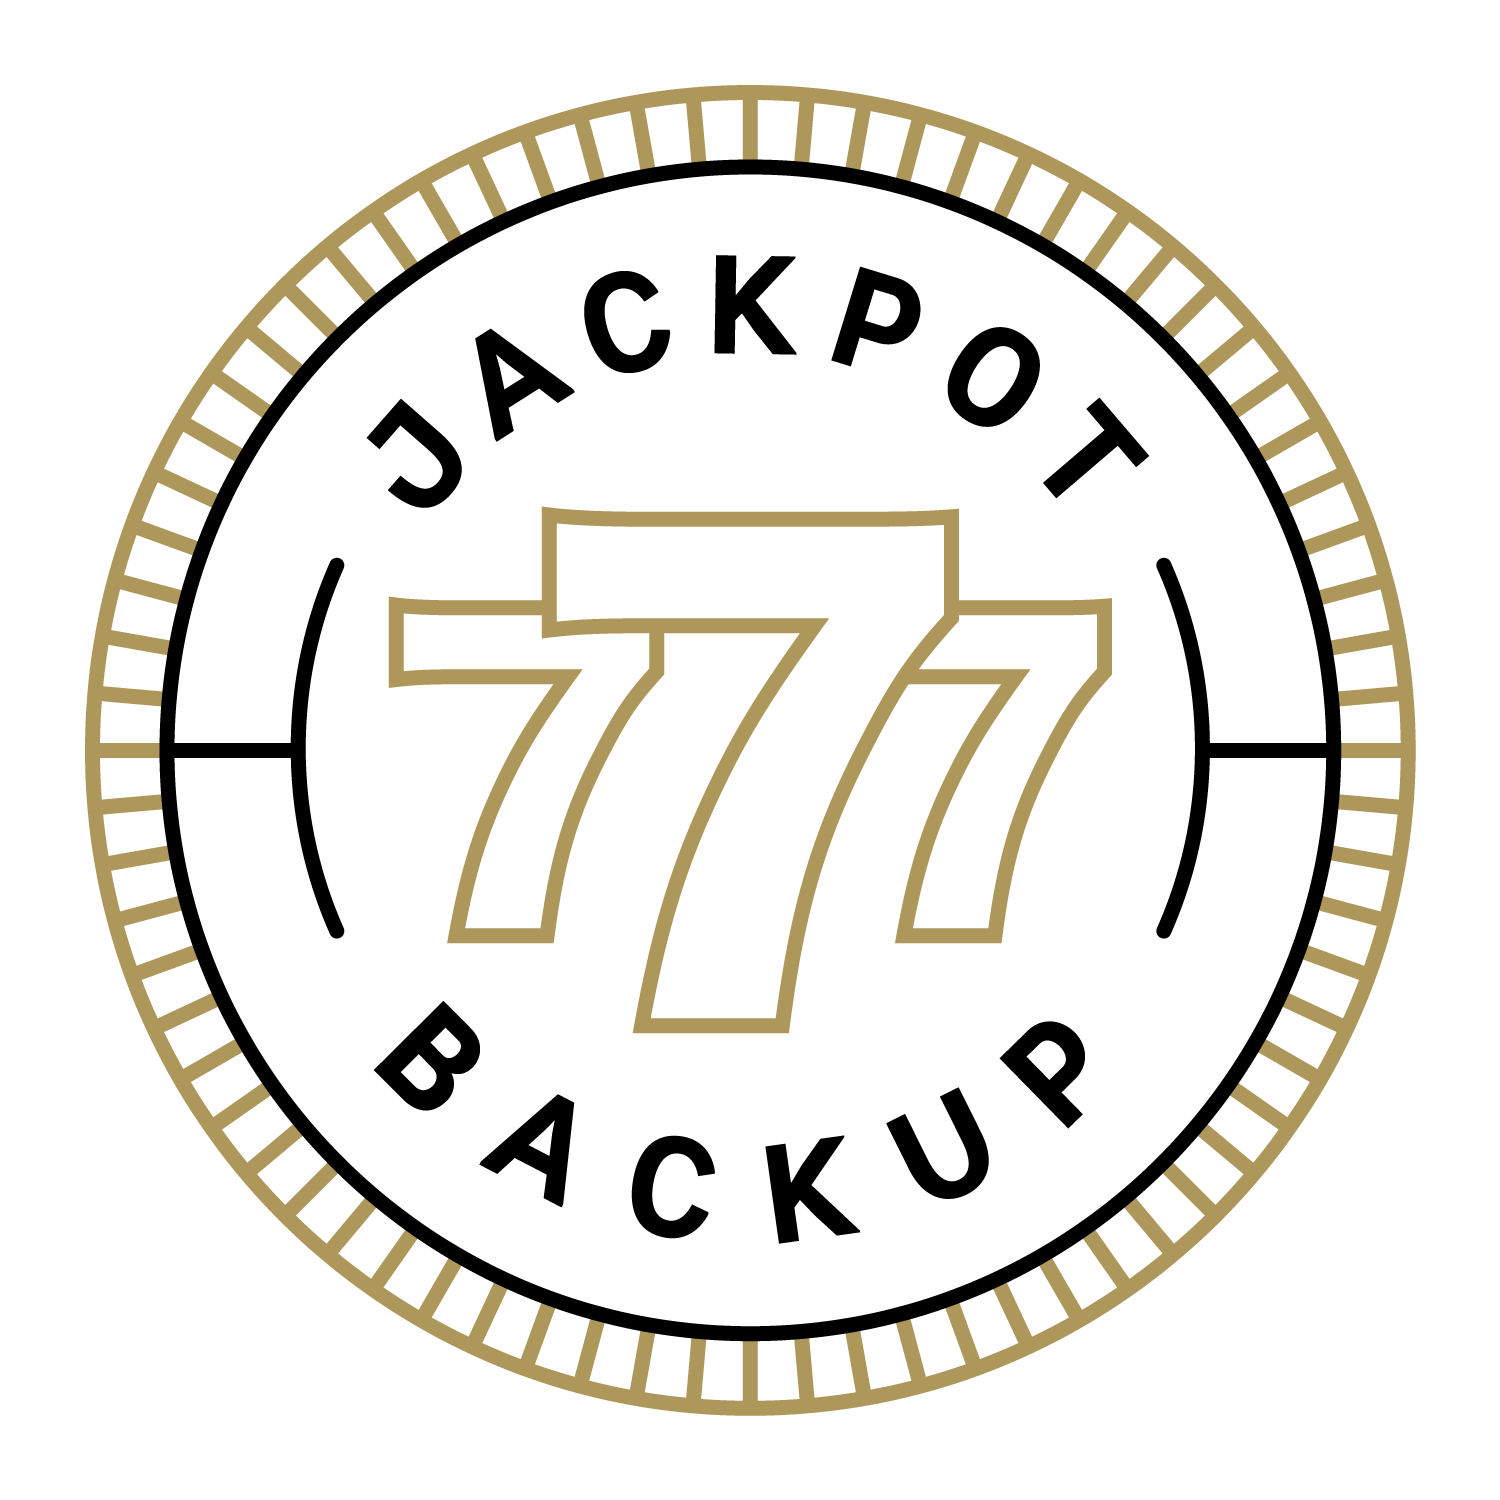 Luckily for you, Clevyr has a publicly available tool called Jackpot Backup that you can use to help kickstart your backup policy! The name is derived from the tool storing the previous 7 days, 7 months, and 7 years' worth of backups automatically for you and handling the automated processes to store those backups wherever you want. 777? You hit the jackpot!